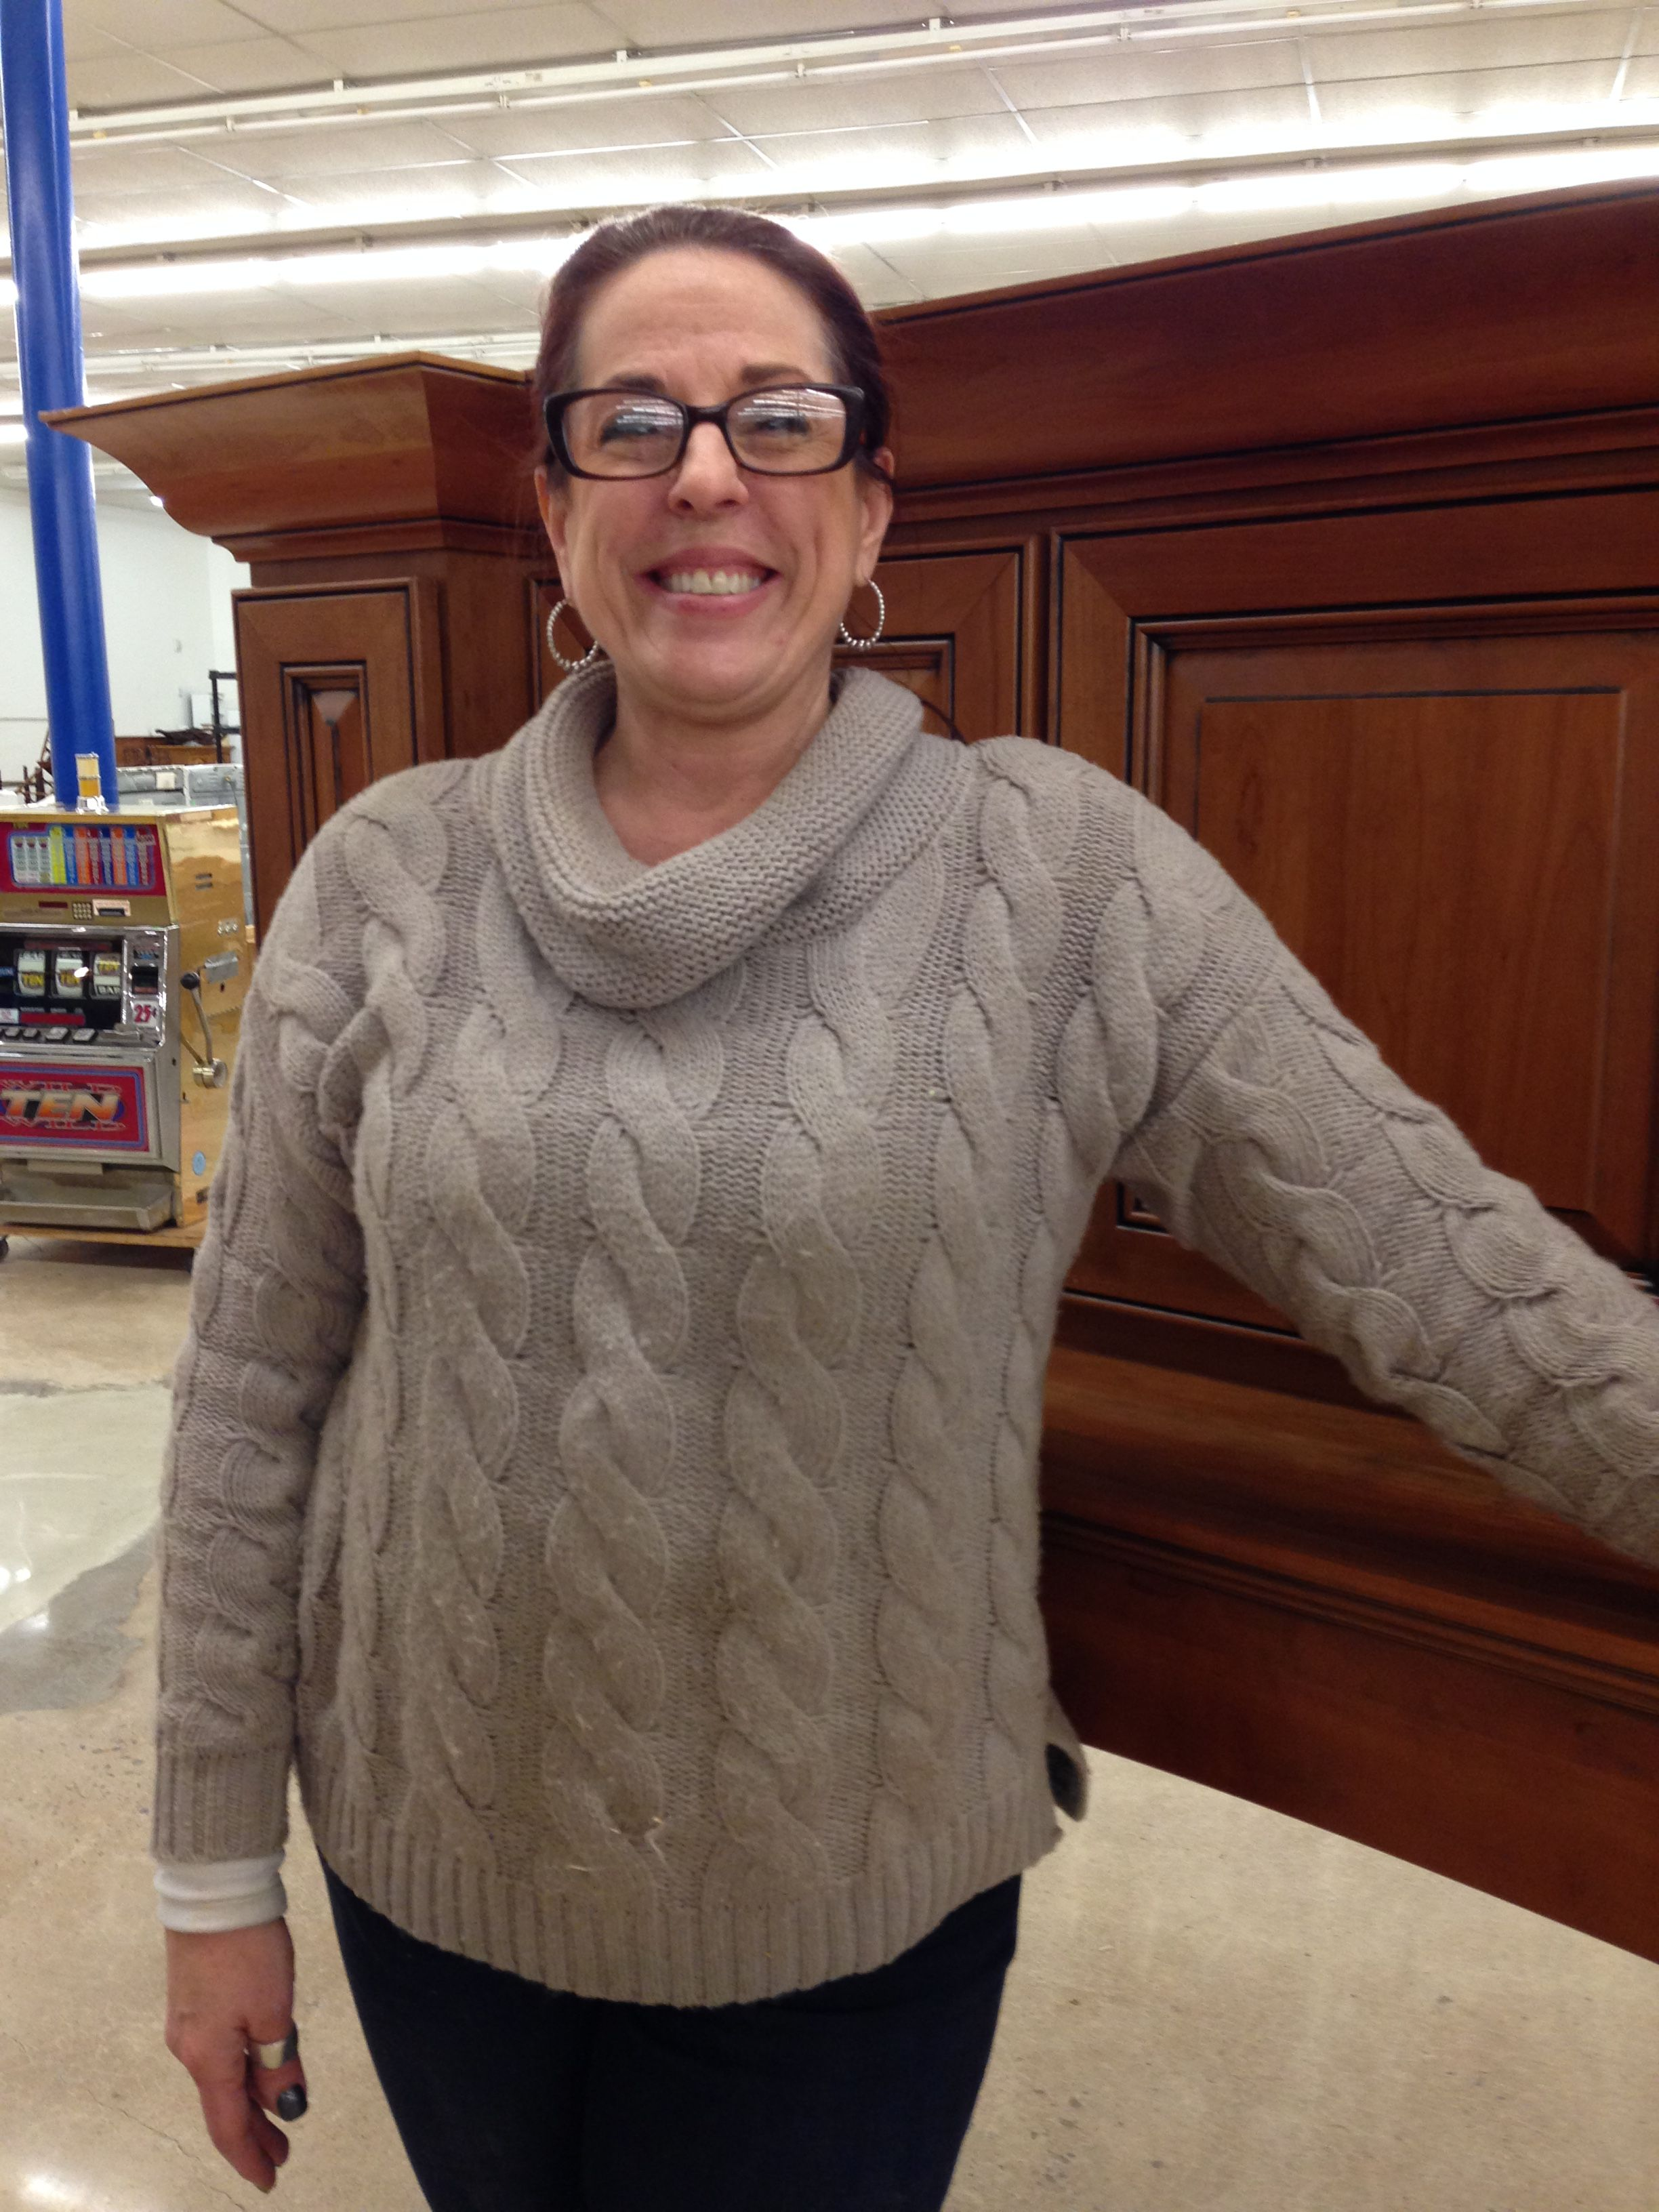 Introducing our new Manassas ReStore Manager, Kristyn Gleason! Kristyn has more than 30 years of restaurant and retail experience, most recently working as the Store Manager for Coach at Potomac Mills Mall. You may also know Kristyn as one of the owners of The Polka Dot Divas shop in Occoquan. Welcome, Kristyn!